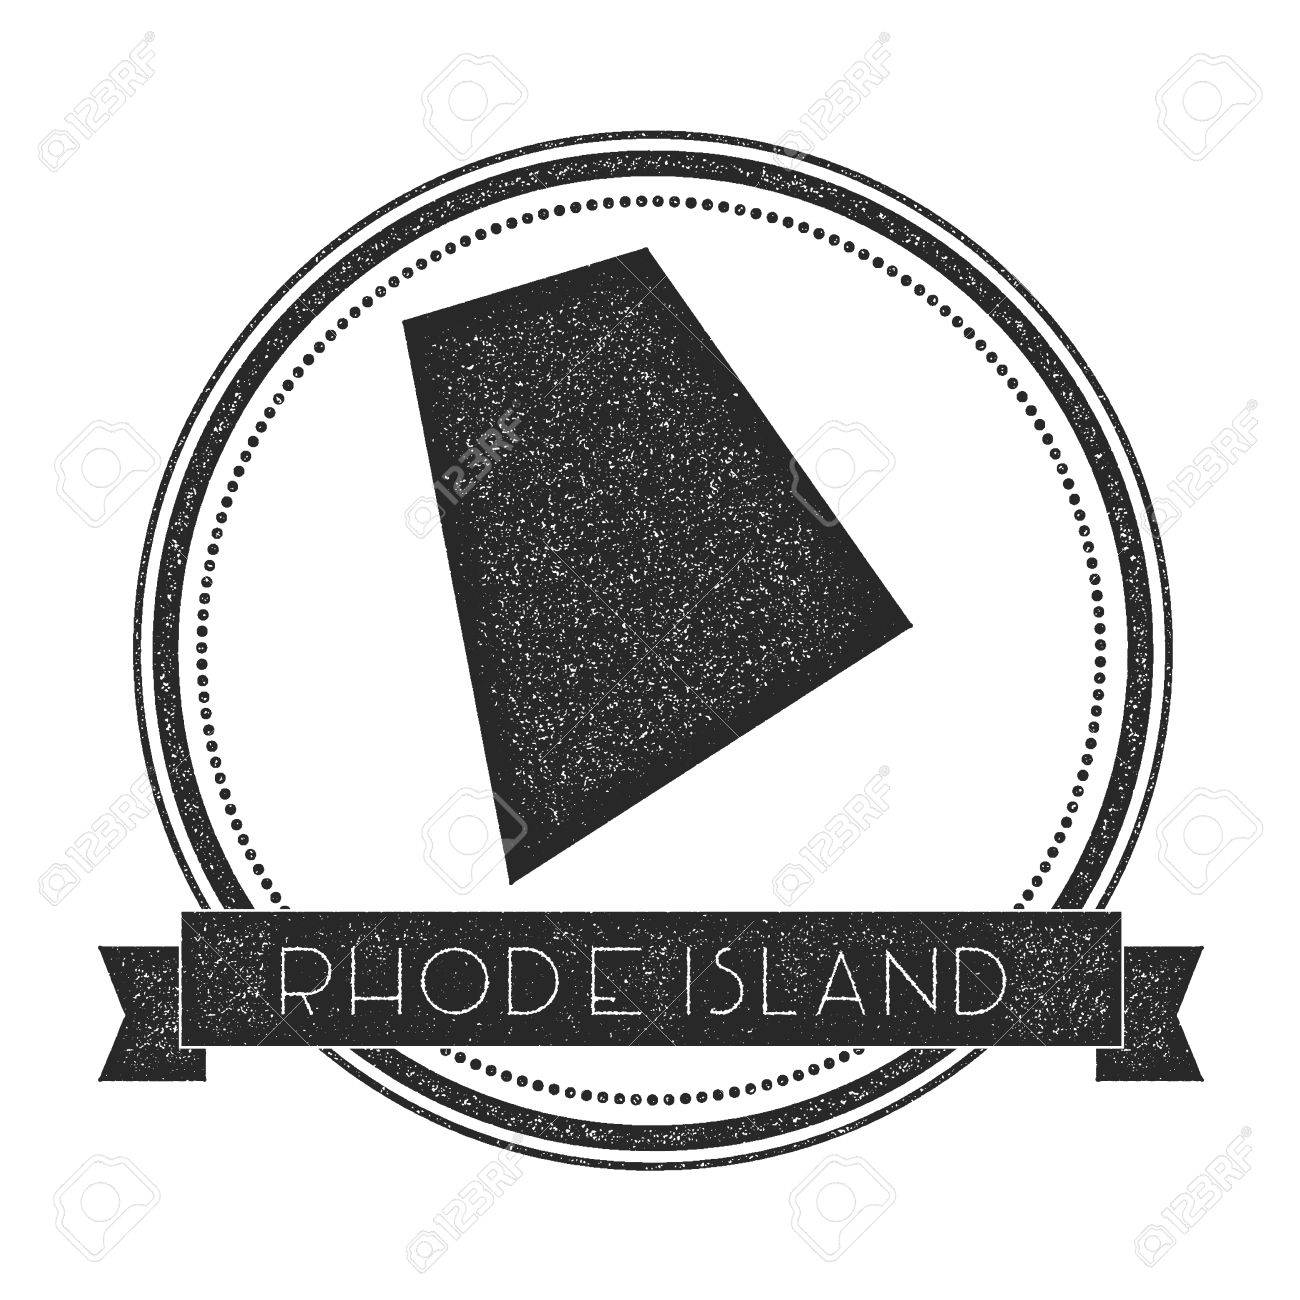 Rhode Island Location On The US Map Rhode Island Simple English - Usa map rhode island